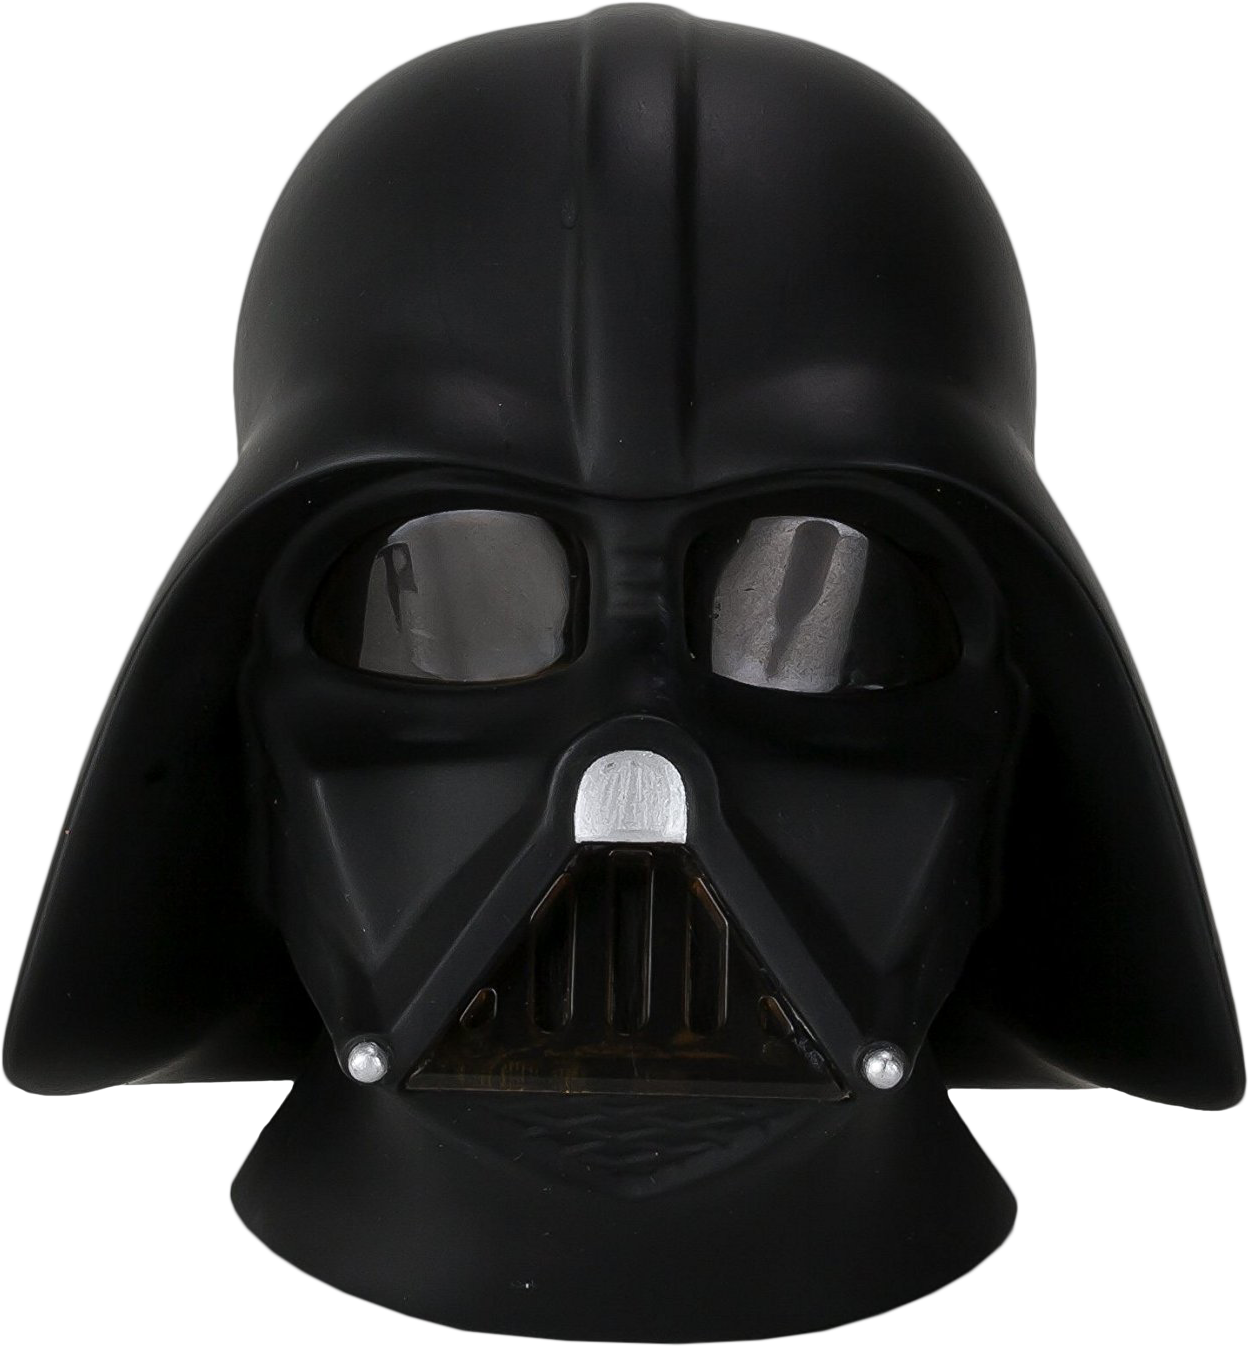 Darth vader head png. Star wars colour changing